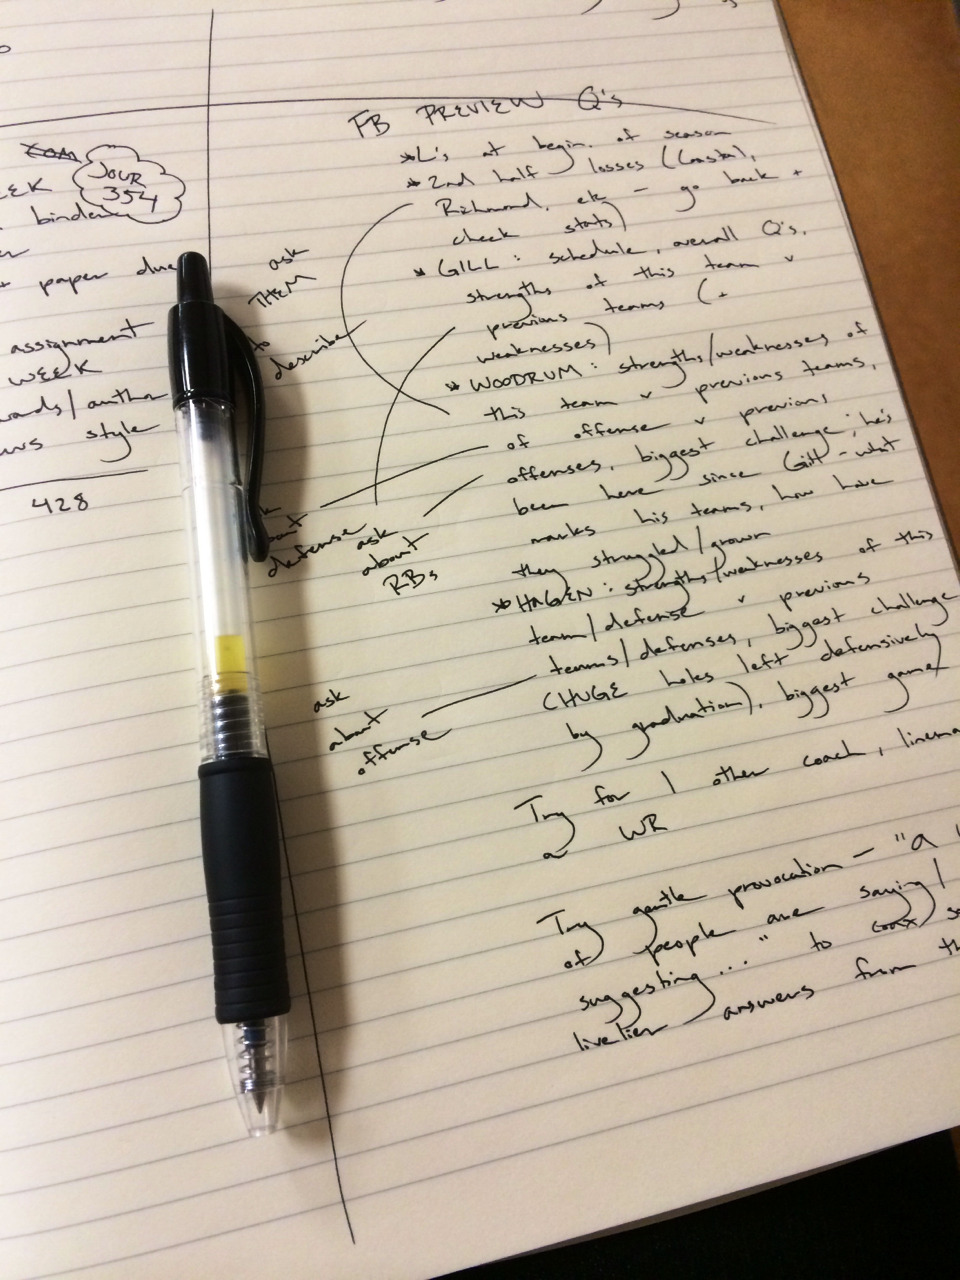 It's hard to focus on note-taking when football season is back. Planning interview questions for the first article…